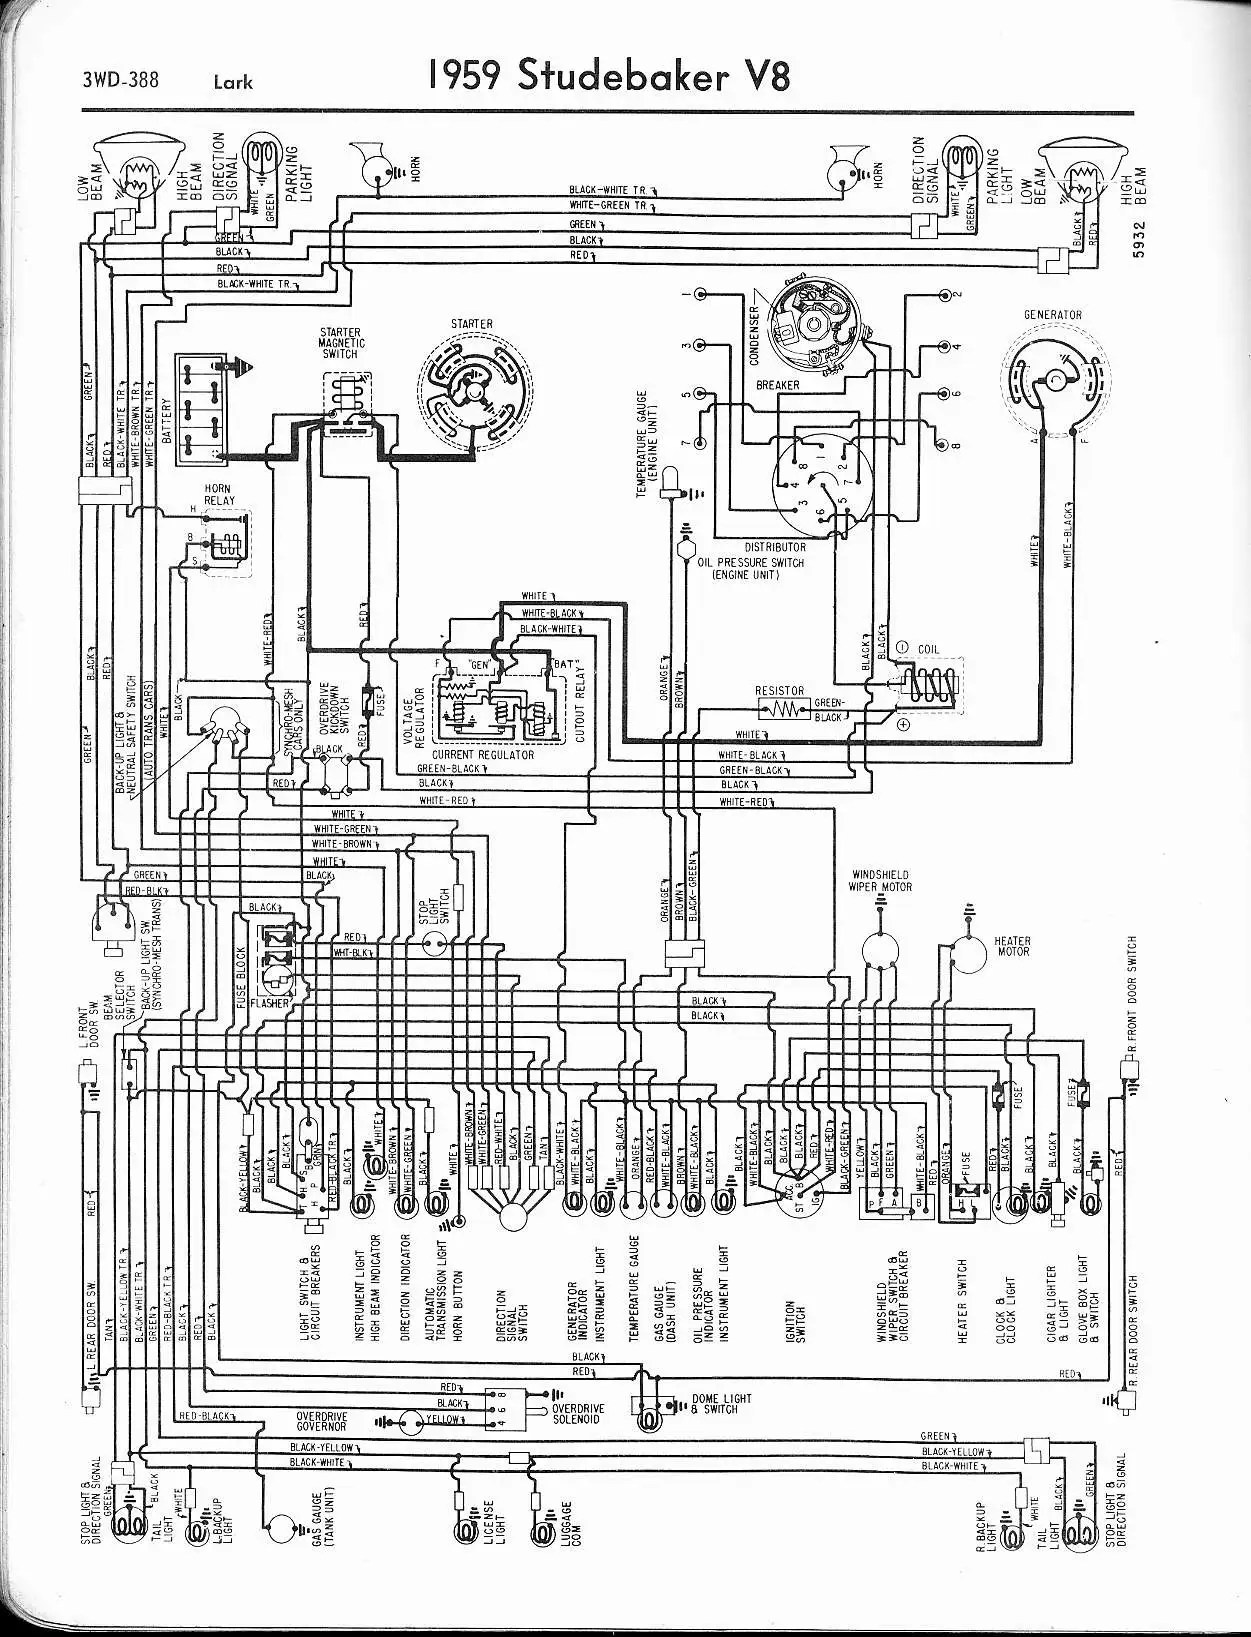 hight resolution of studebaker wiring diagrams the old car manual project wiring diagram for 1962 studebaker 6 lark